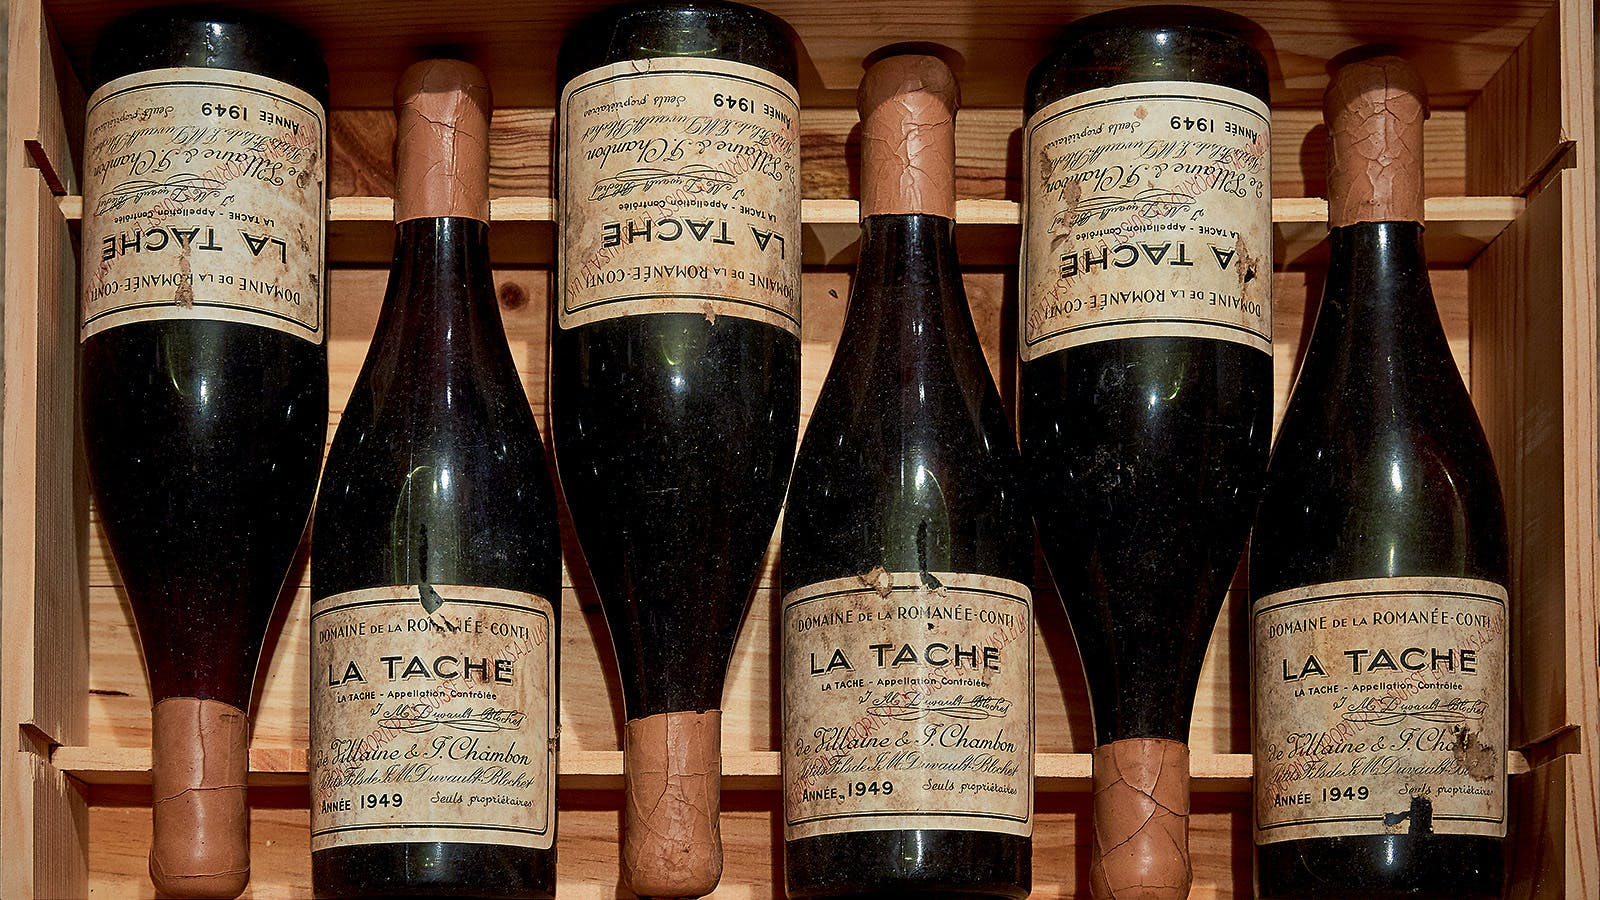 Domaine de la Romanée-Conti 1945 Auctioned for Record-Shattering Price